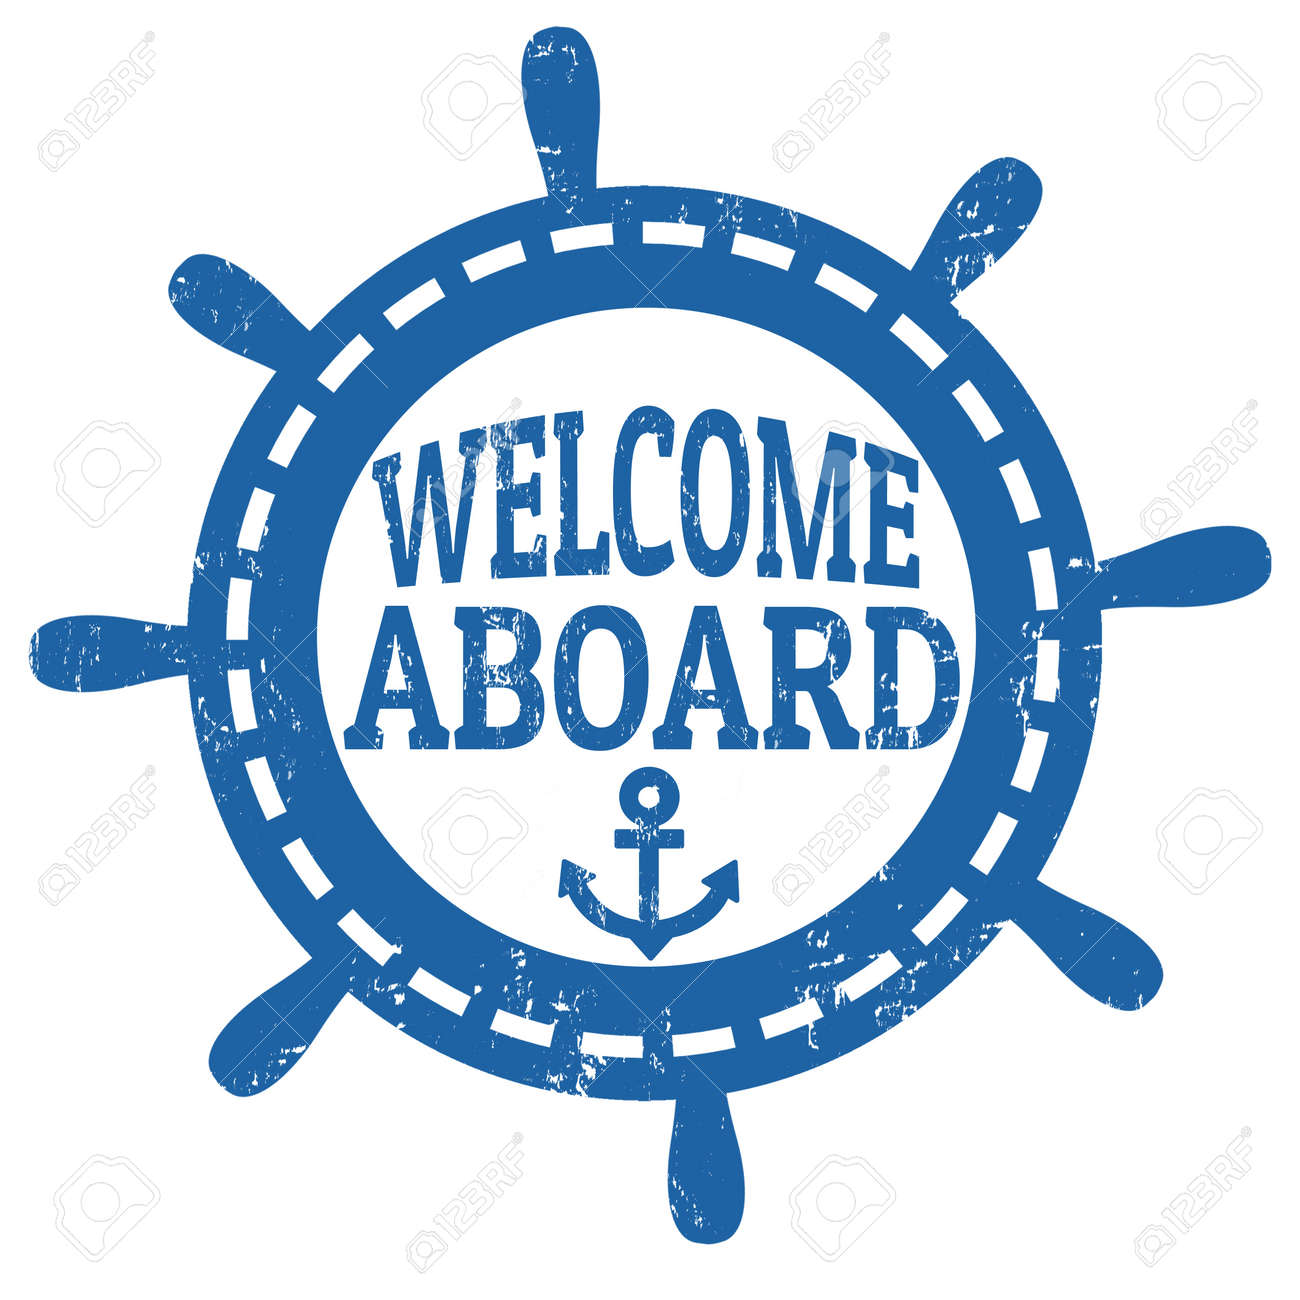 319 welcome aboard stock illustrations cliparts and royalty free rh 123rf com